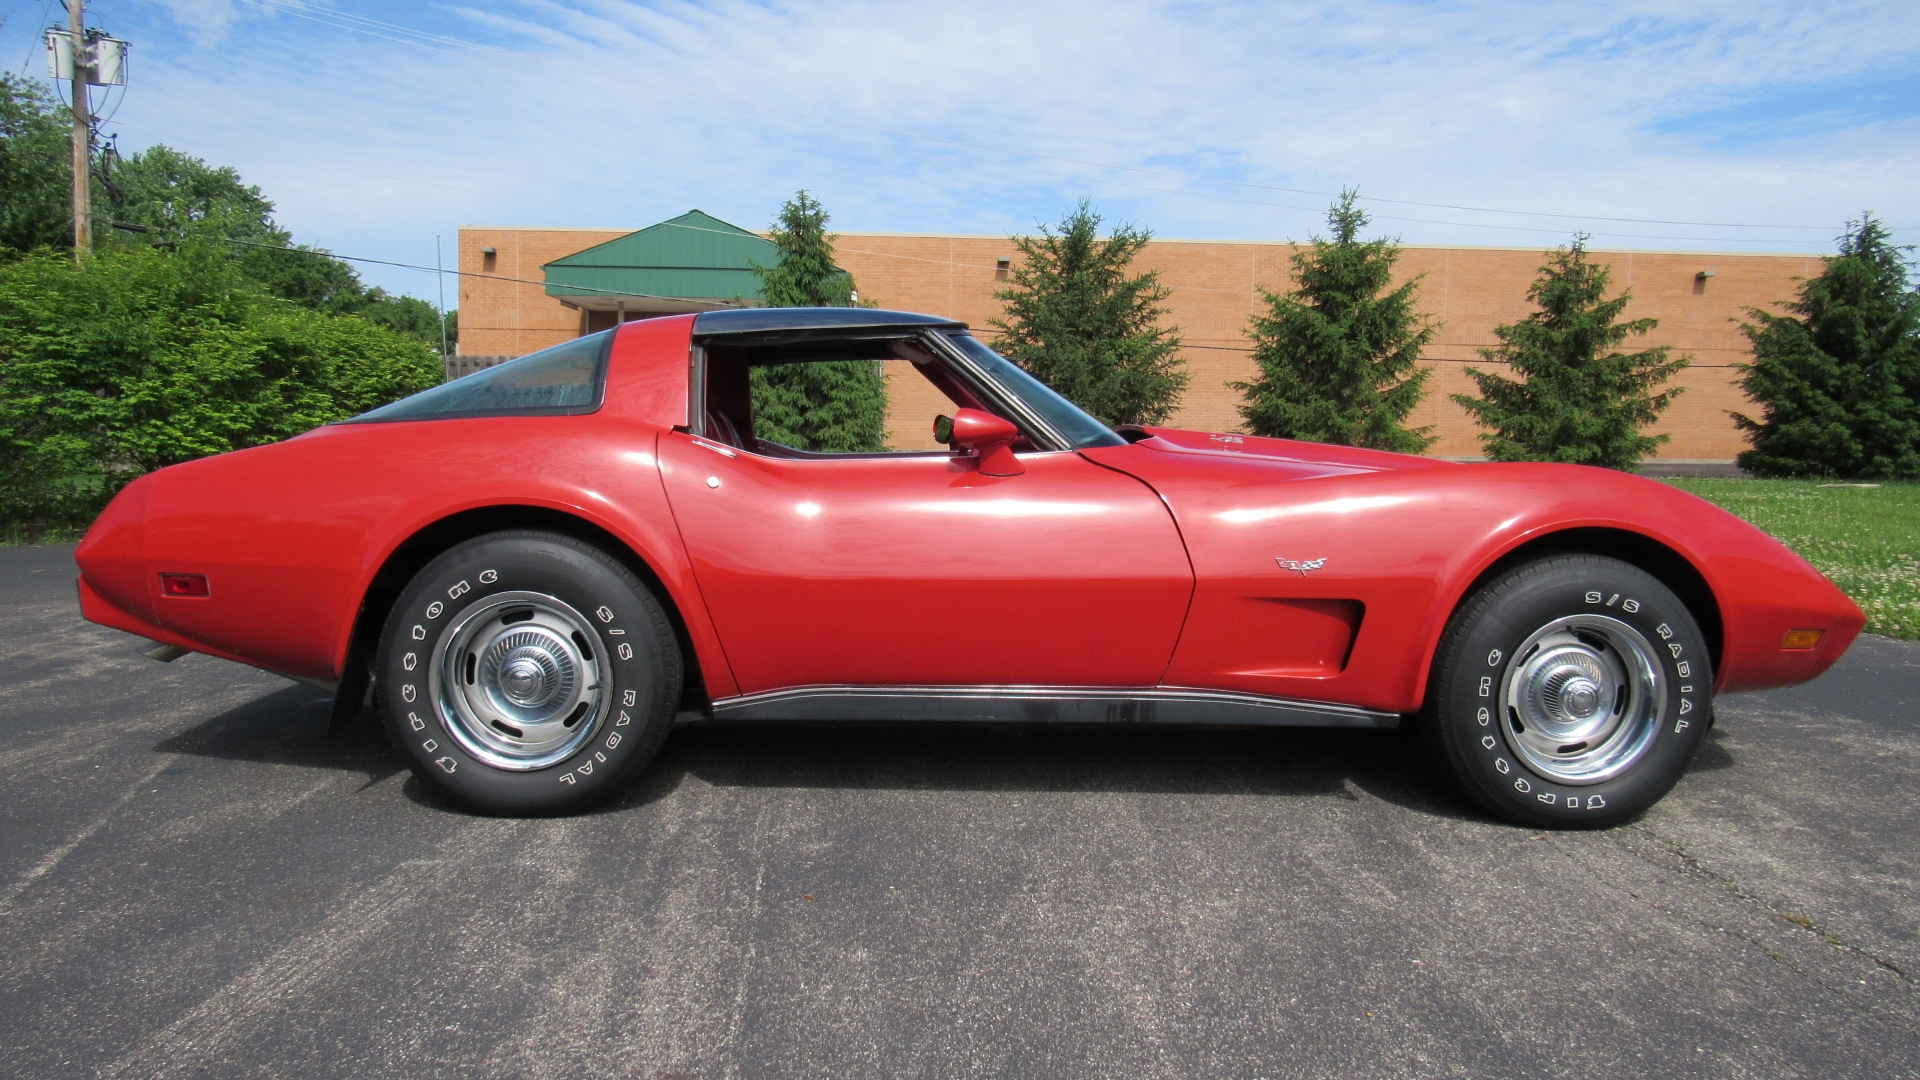 1979 Corvette Factory L82 4 Speed 43k Miles Sold Cincy Classic Cars